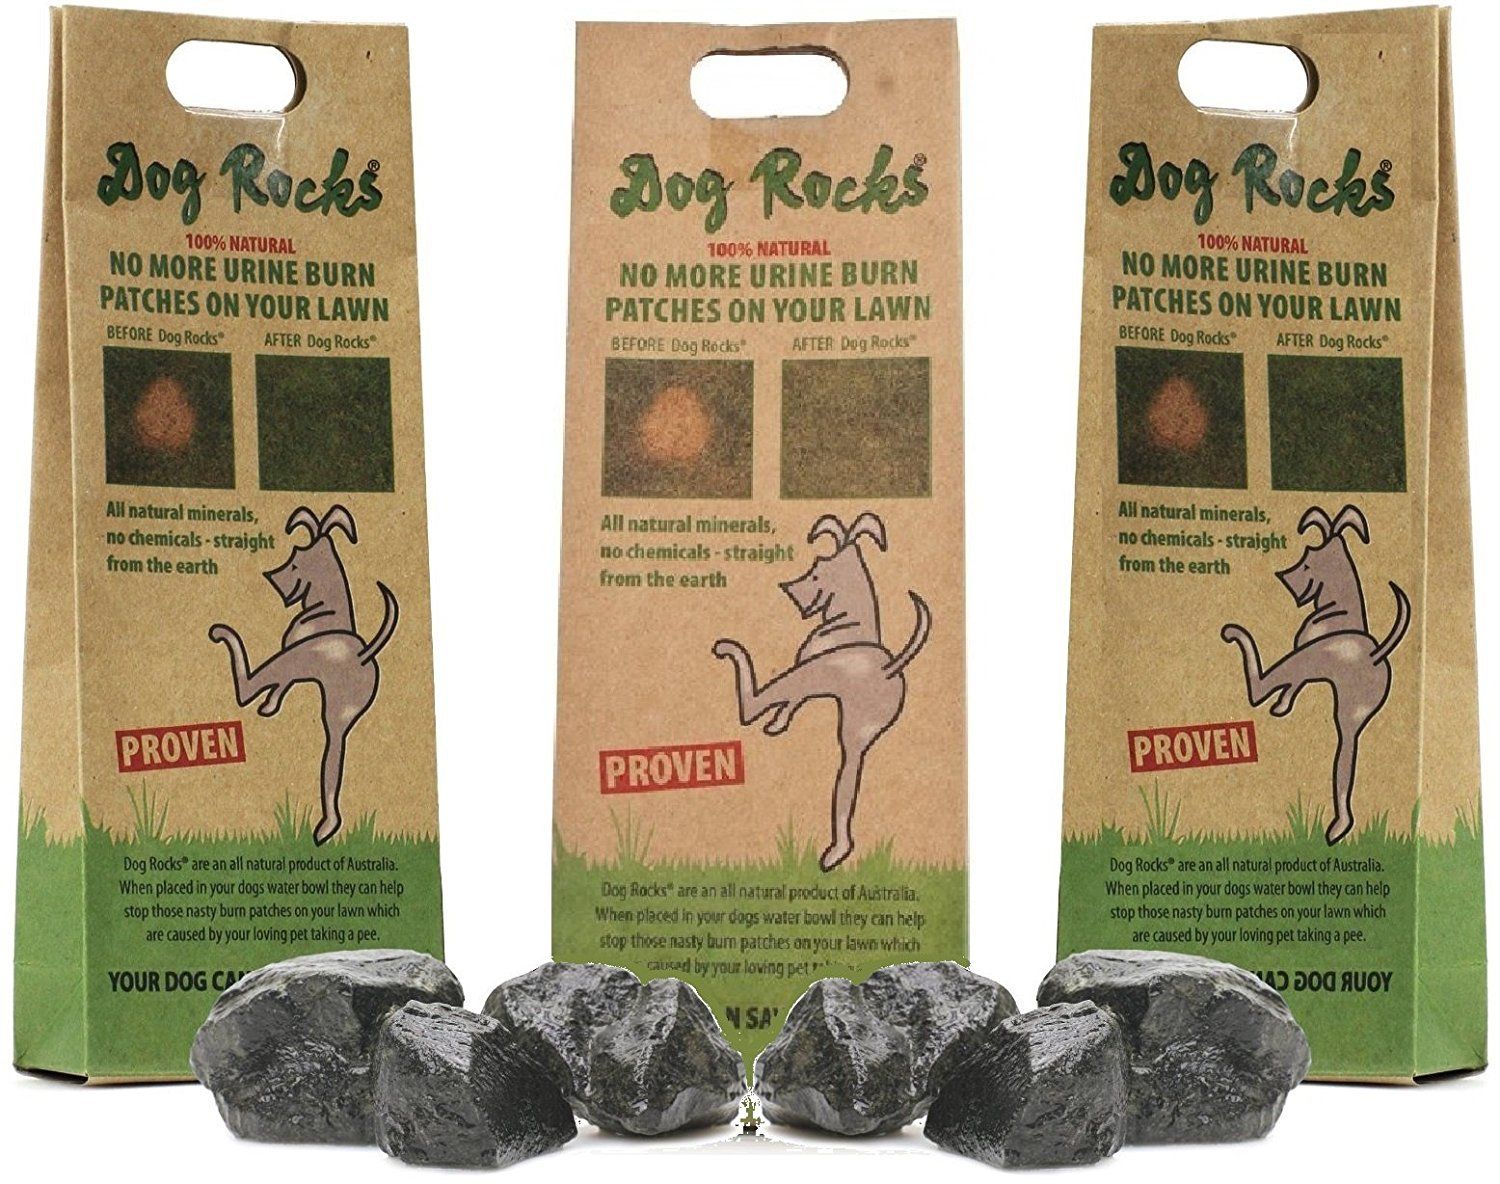 Dog Rocks - 100% Natural Grass Burn Prevention - Prevents Lawn Urine Stains - Three Small Bags - 6 Month Supply by Dog Rocks